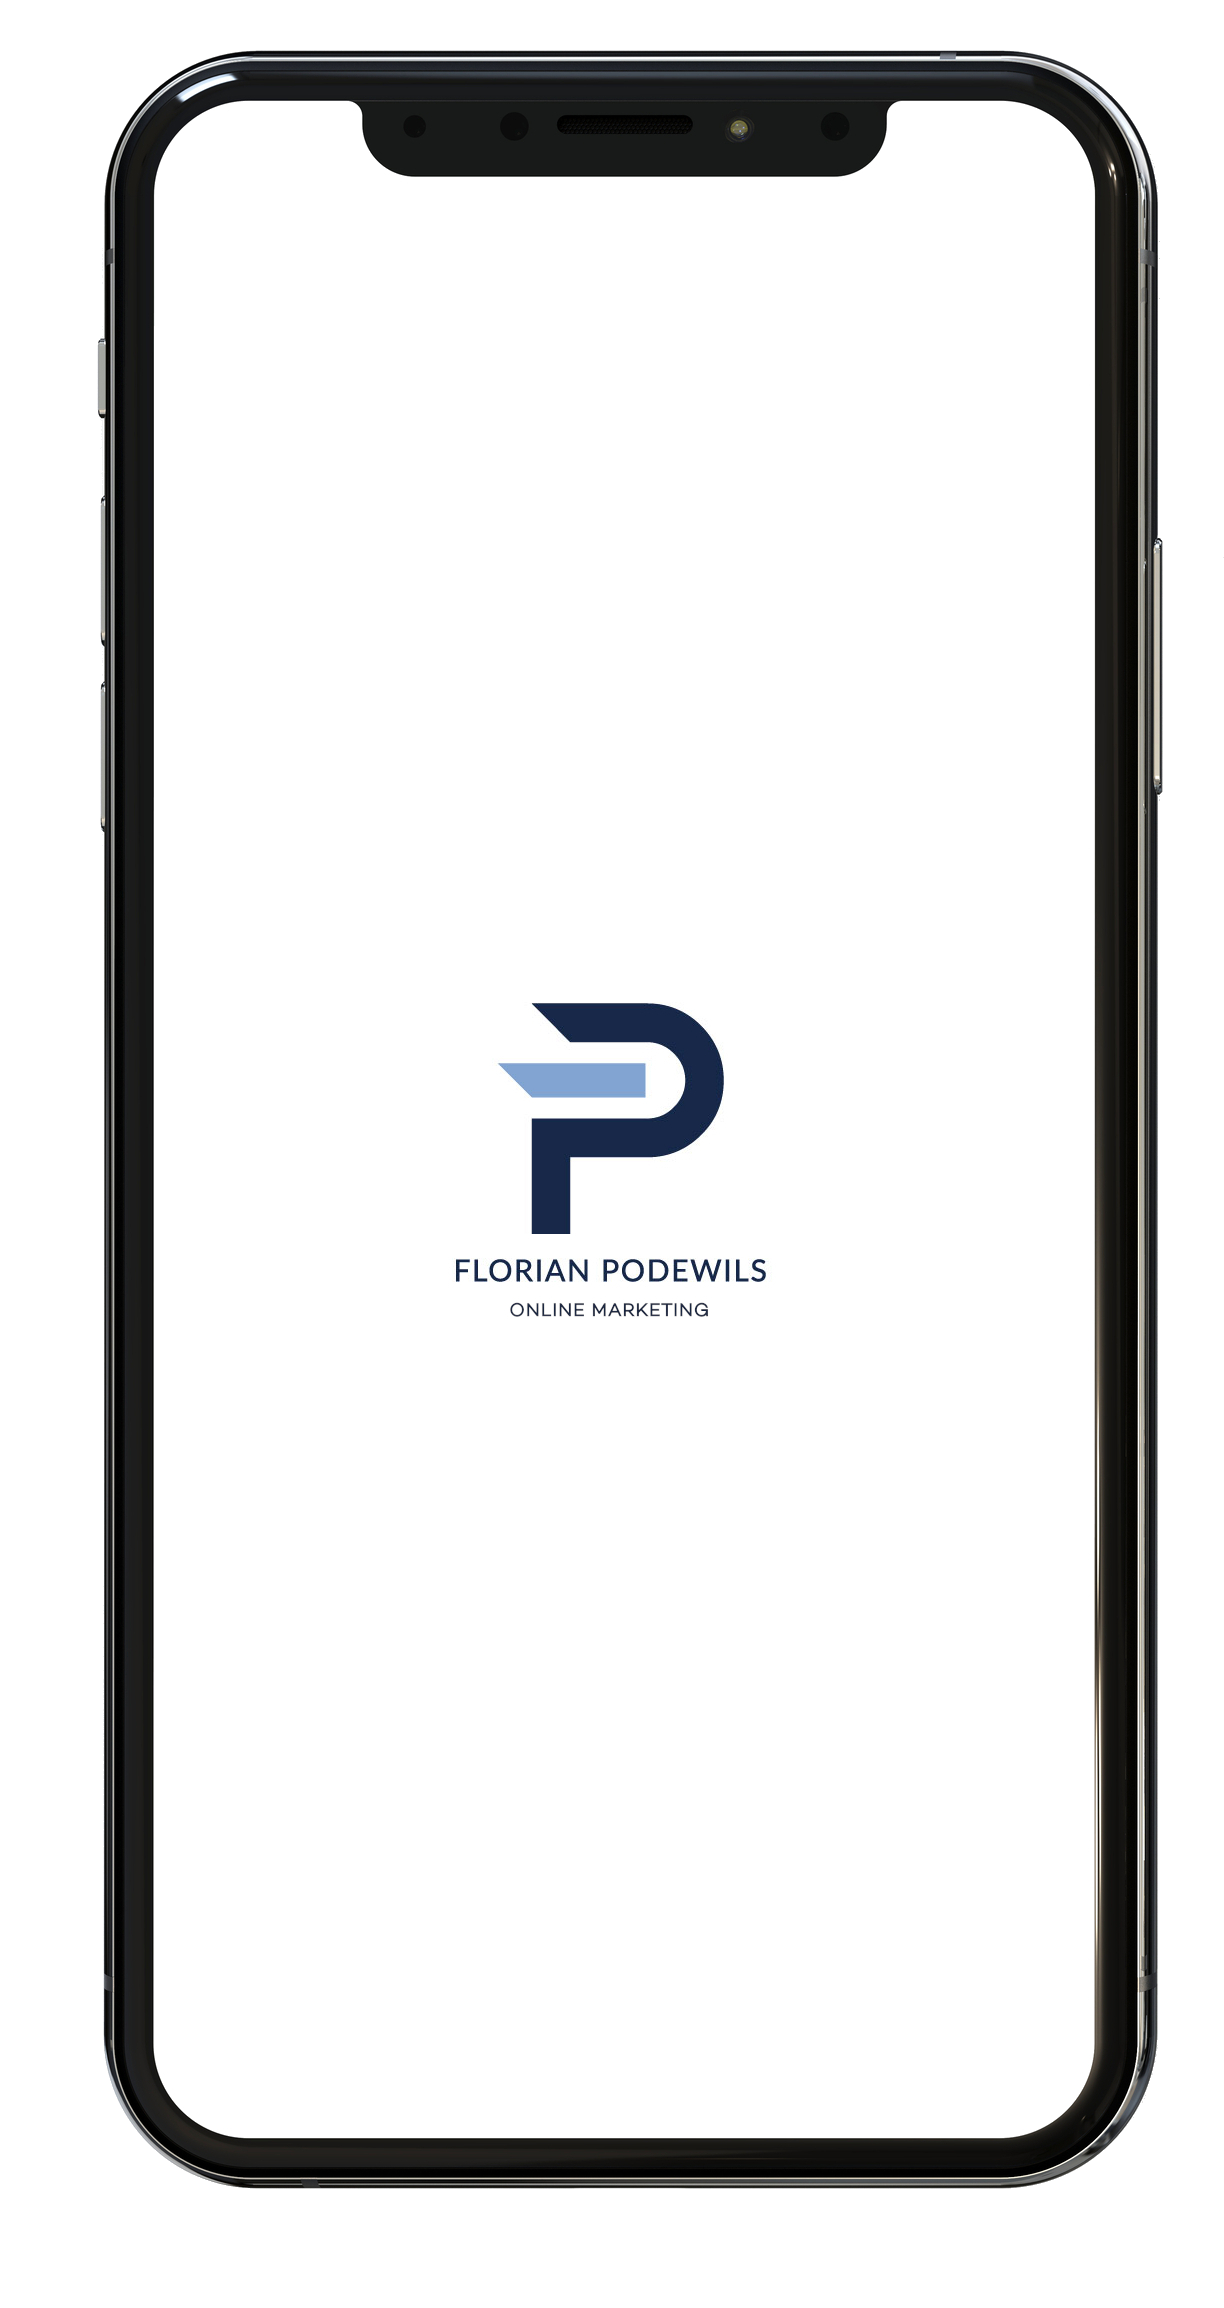 FP Logo in Iphone Mockup